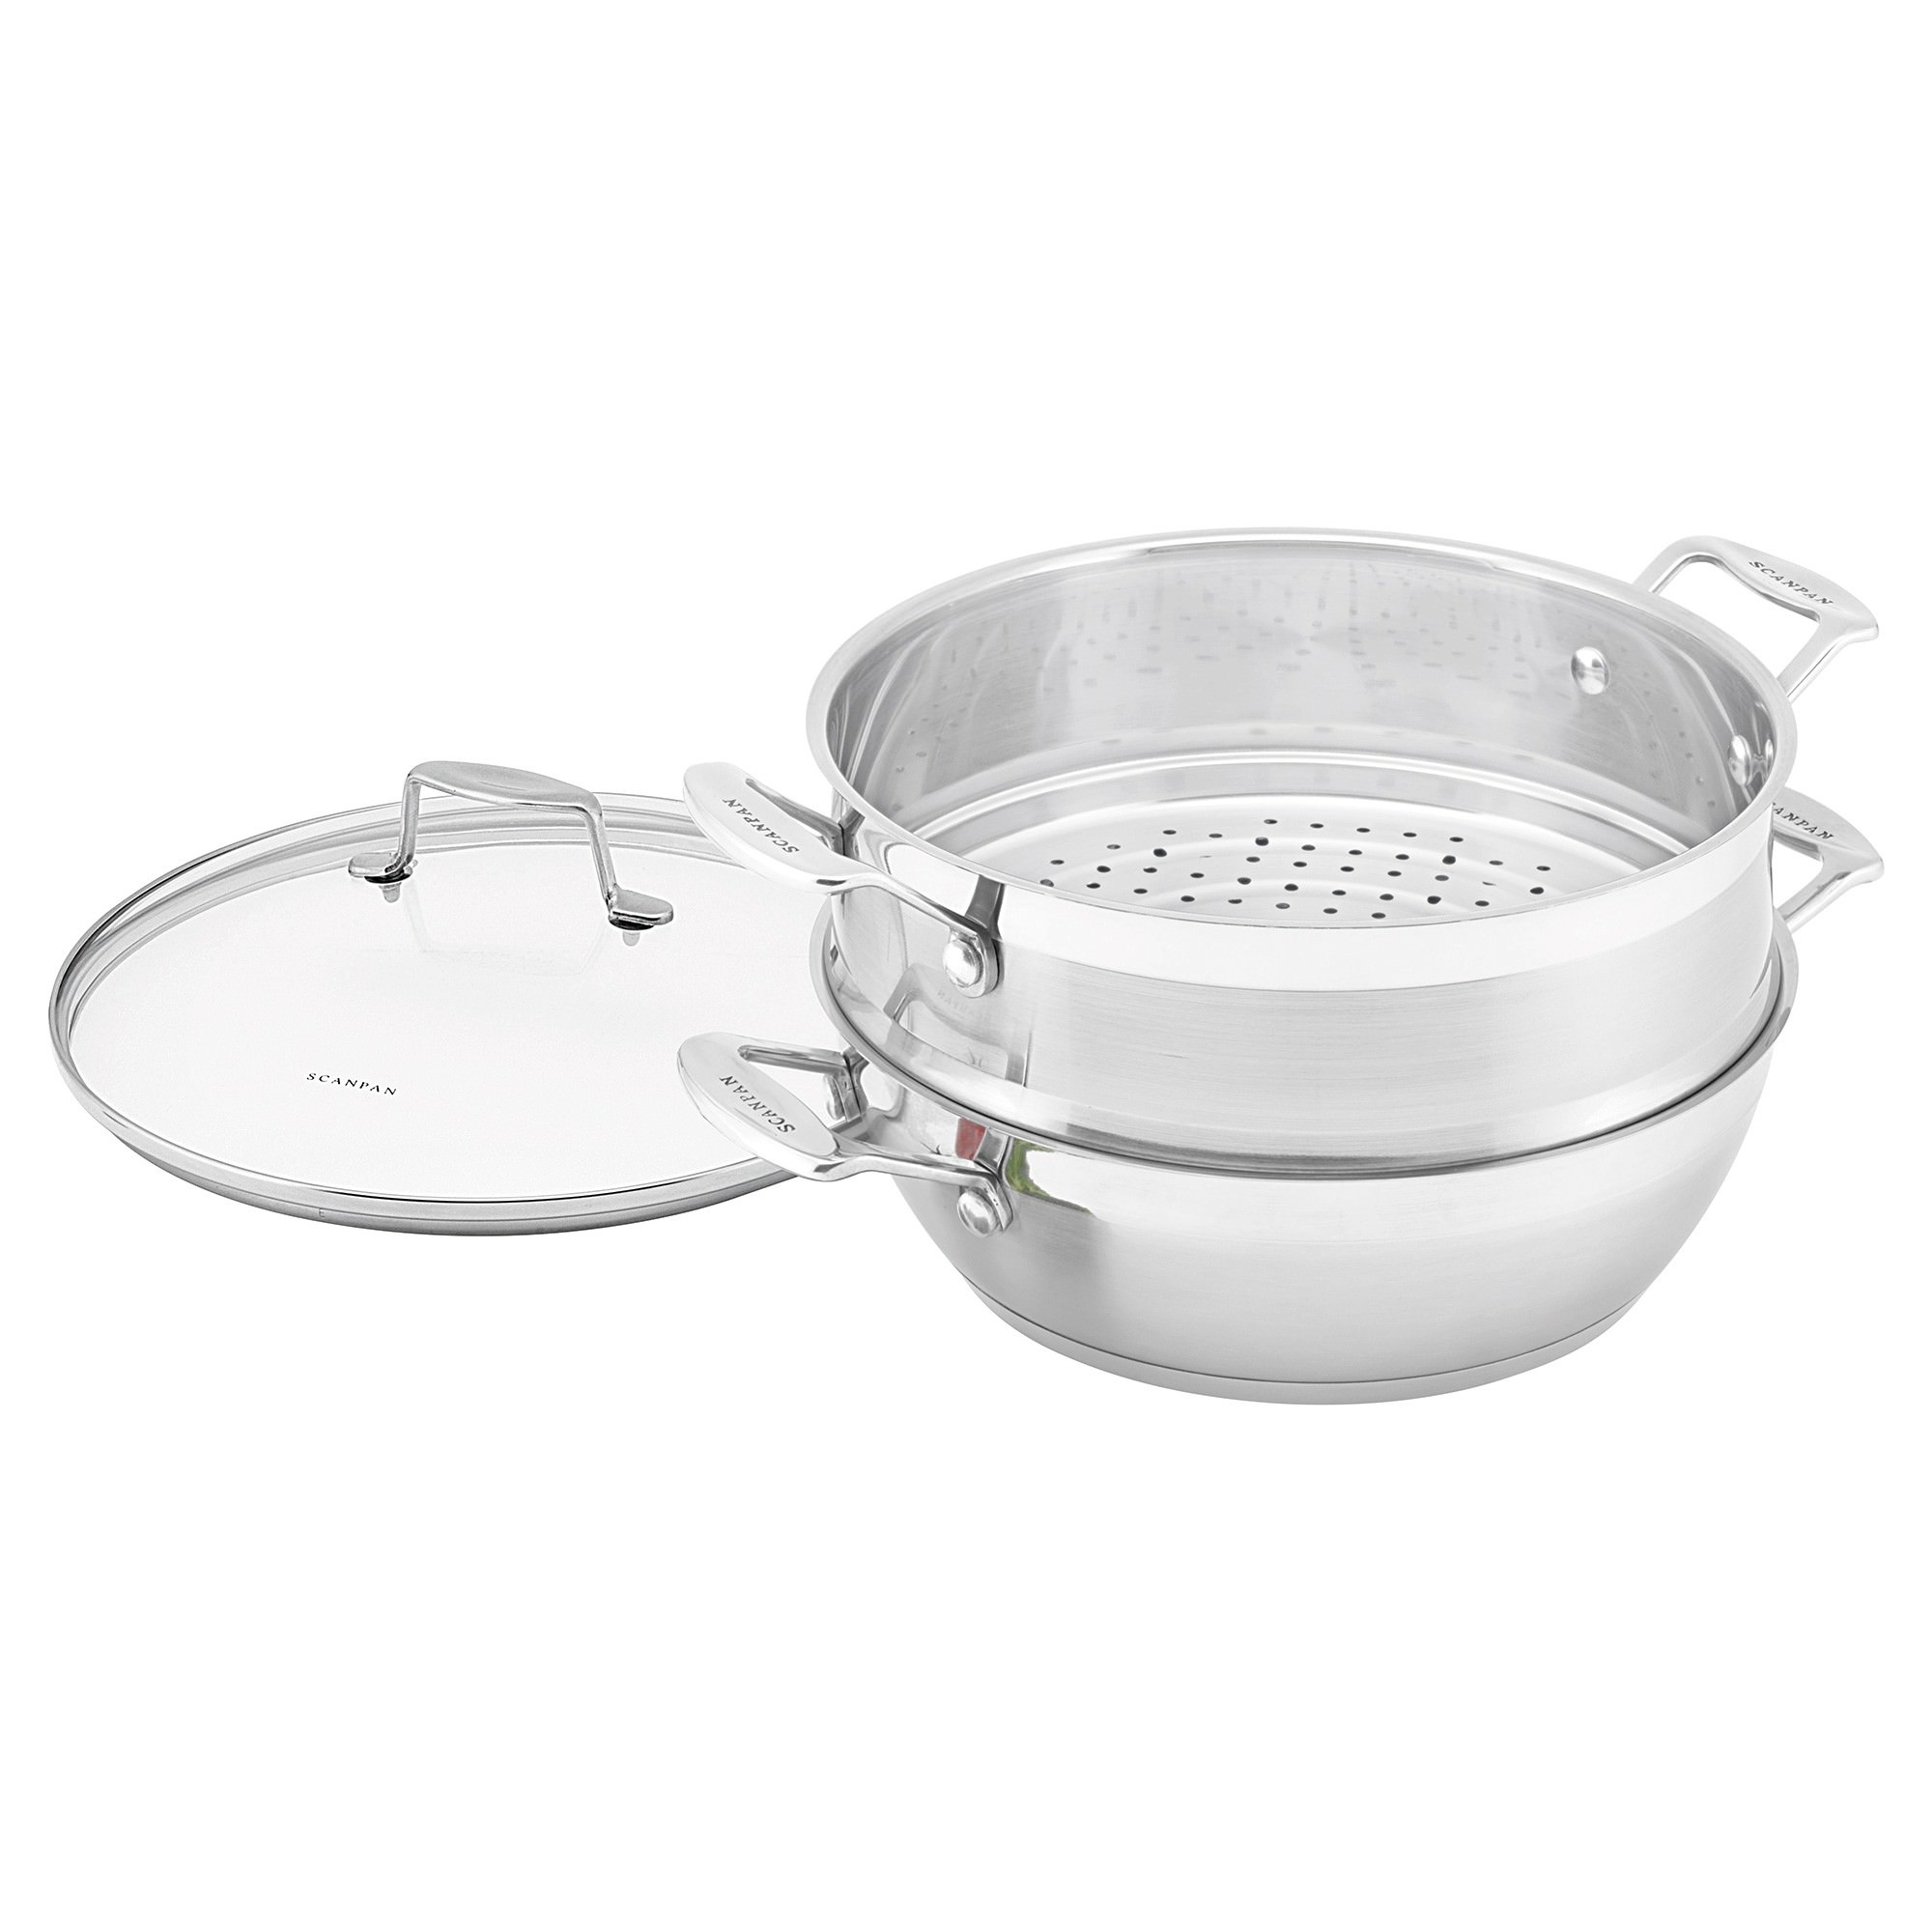 Scanpan Impact 28cm Multi-Purpose Pan with Lid